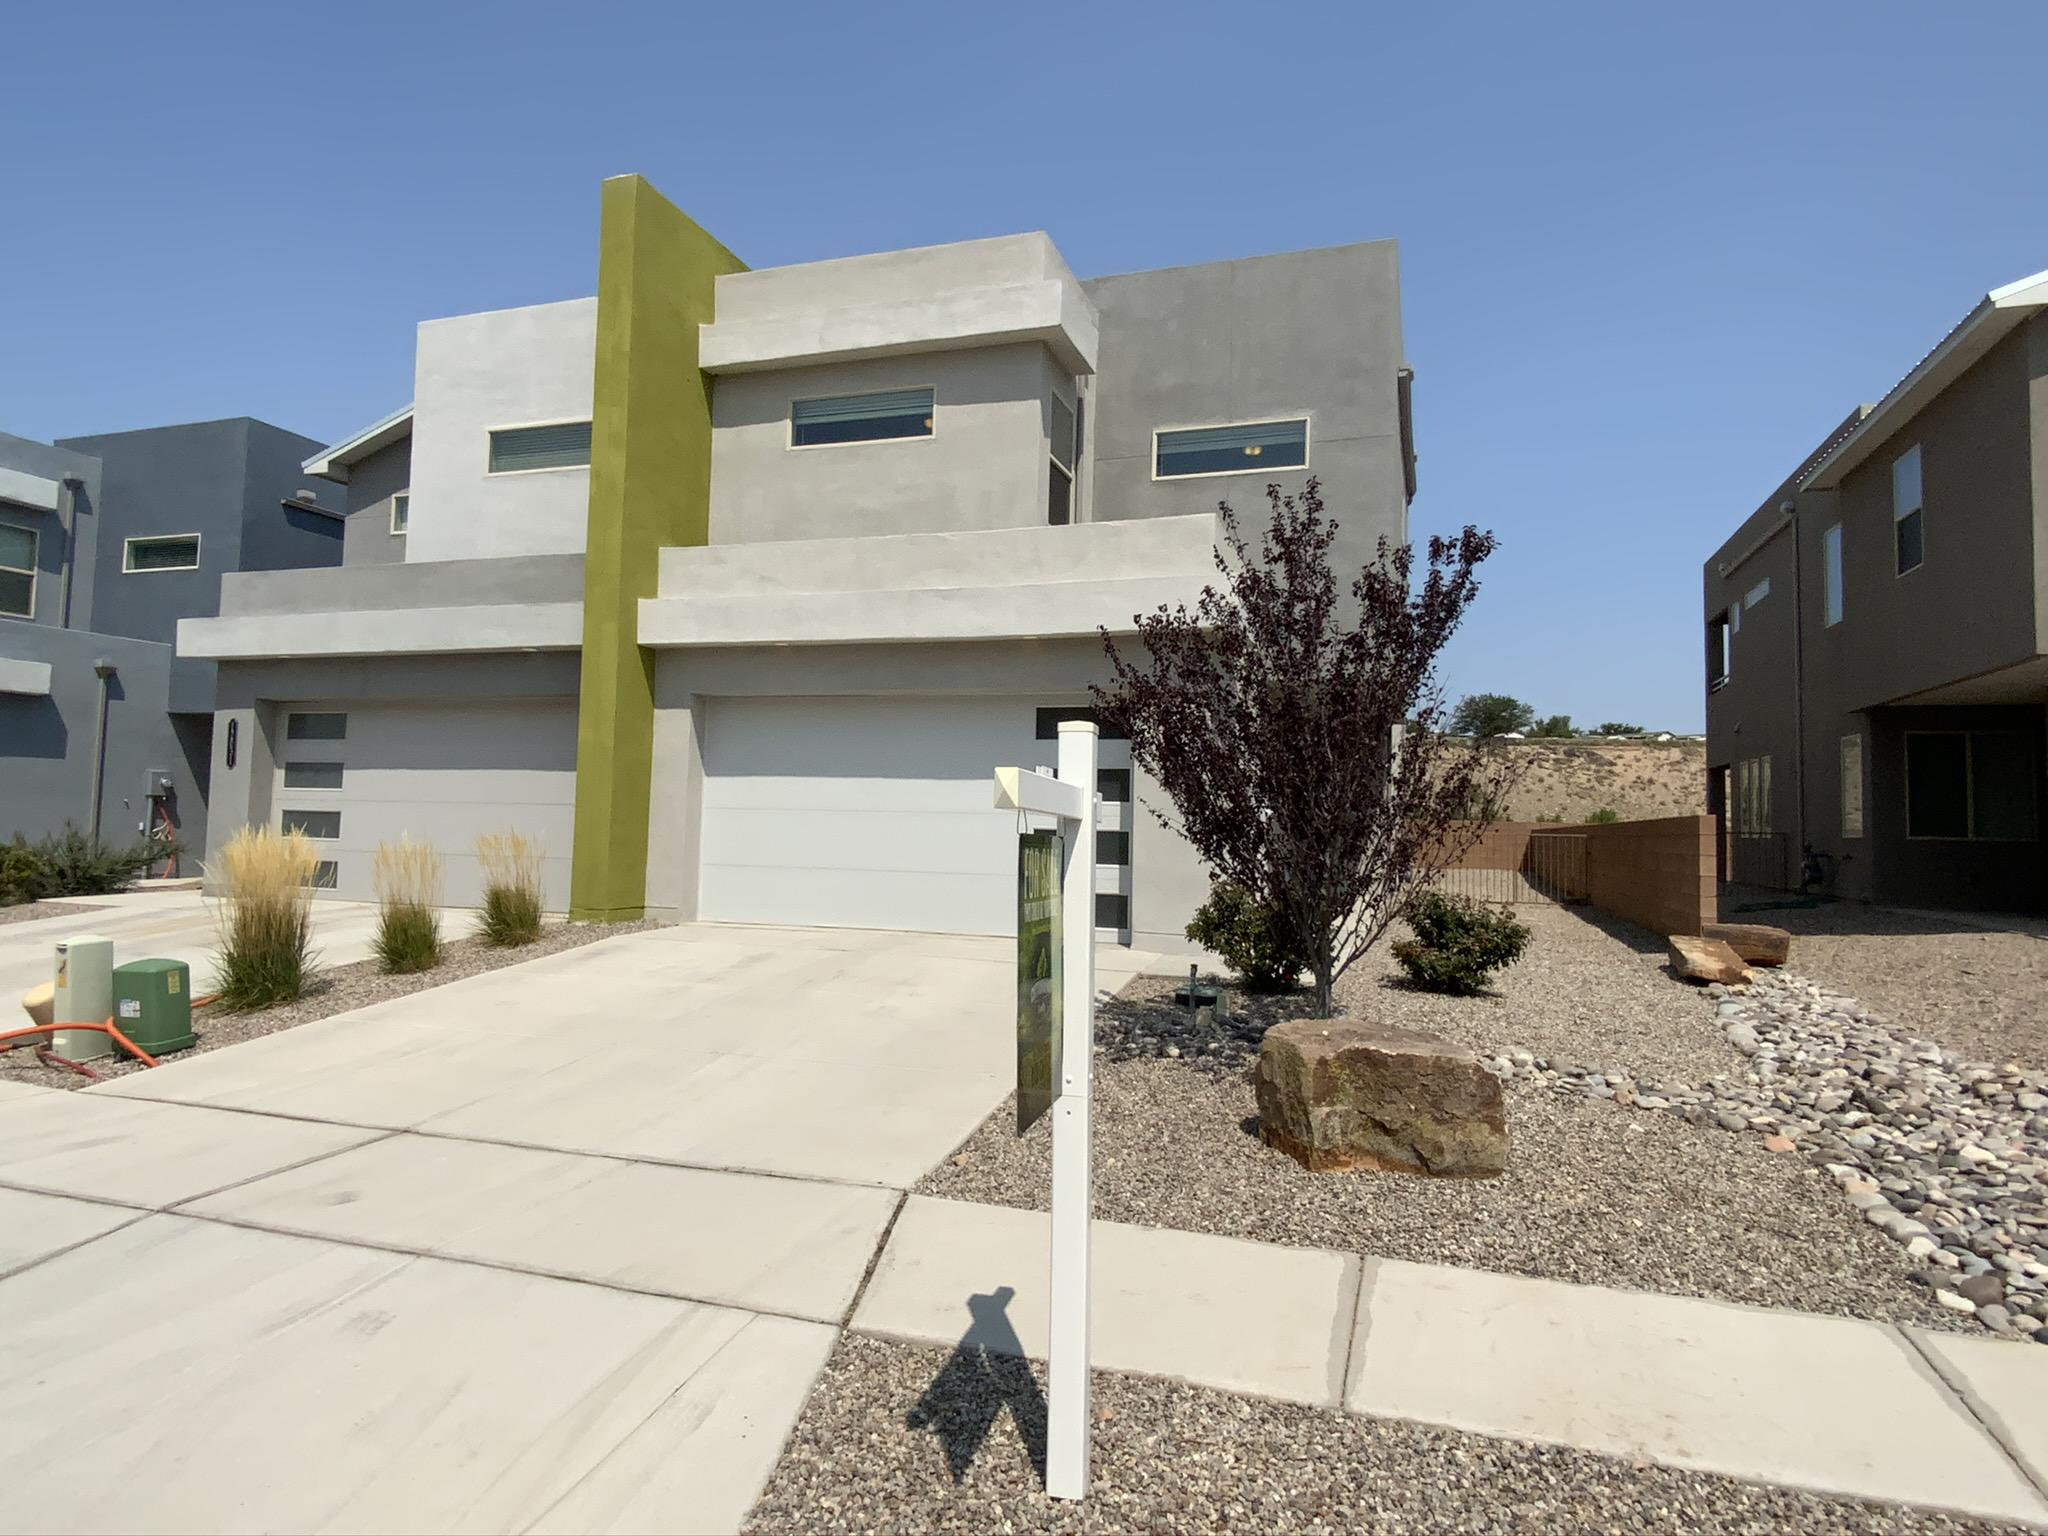 Time to upgrade to this beautiful contemporary town home community in Volterra!  Priced to sell quickly!  This propety is a New Mexico Silver Certificate green construction by DR Horton! Features include; granite, 2 zone refrigerated air (upstairs / downstairs), tank-less / never ending hot water, 2x6 construction, Low-E vinyl windows, LP Techshield radiant barrier roof sheathing, Blown-in/ packed insulation, rebar reinforced foundation, Taexx pest control system, dual lavs, closet plus organizing system and much more!  Private bridge connects community to civilization which is surrounded by incredible views and open space trails!